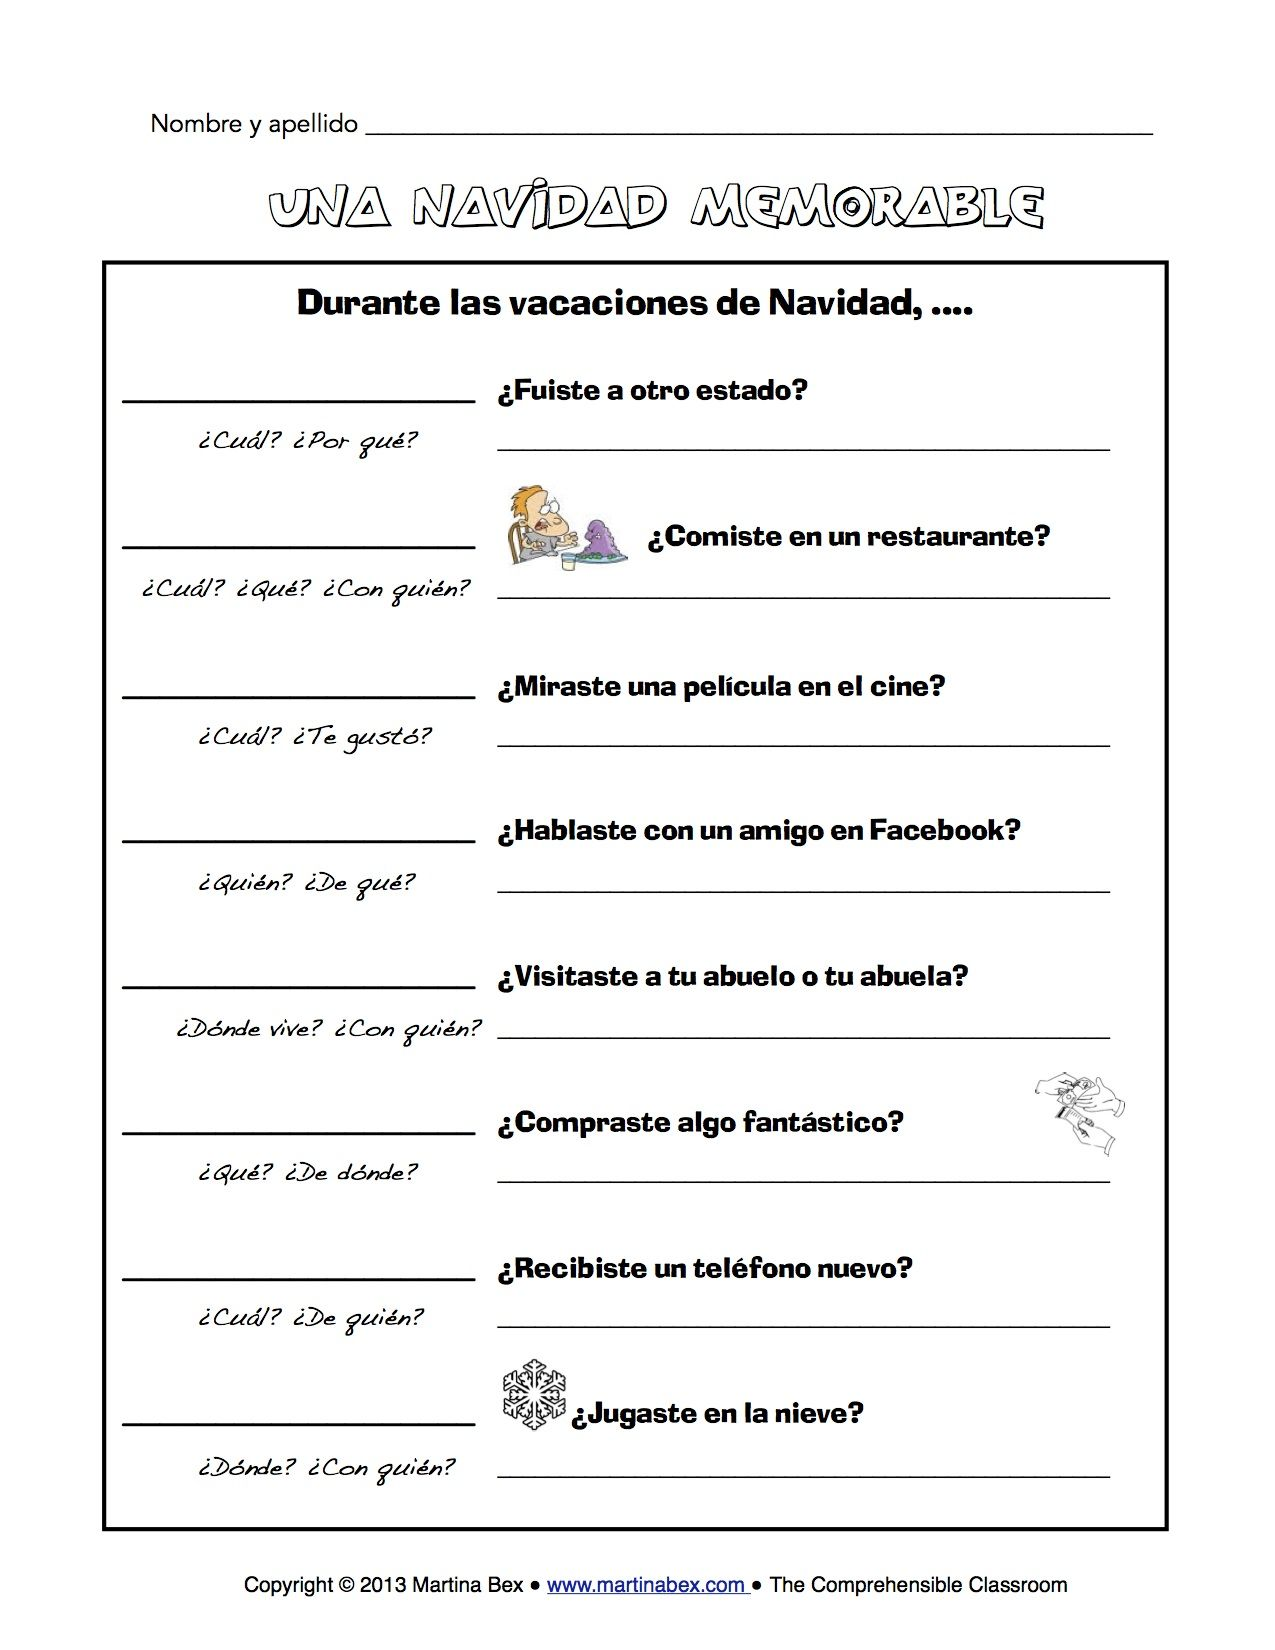 Christmas Vacation Communicative Activity In Spanish For